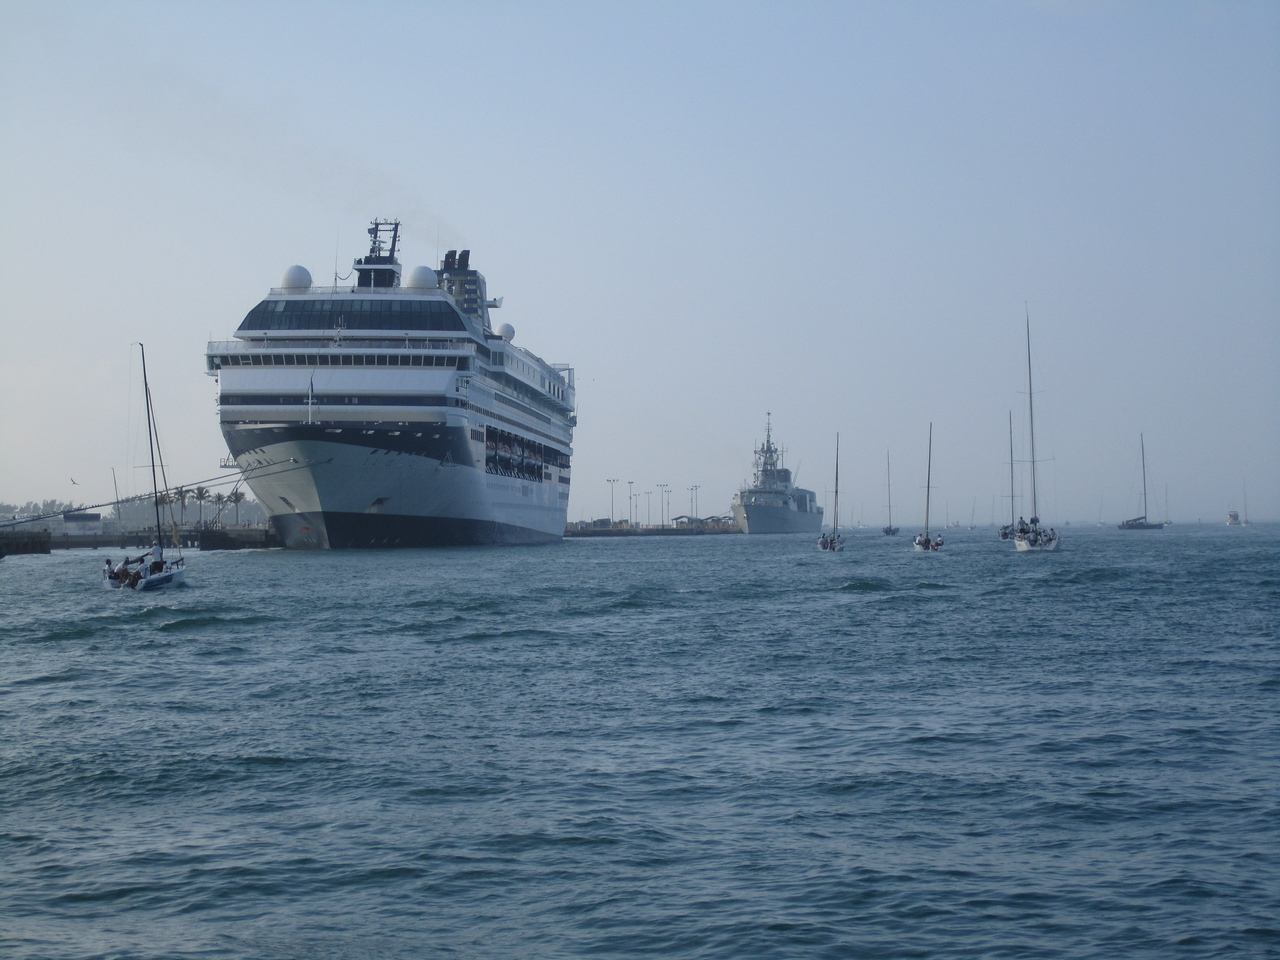 Heading out to the race course by the cruise ships.